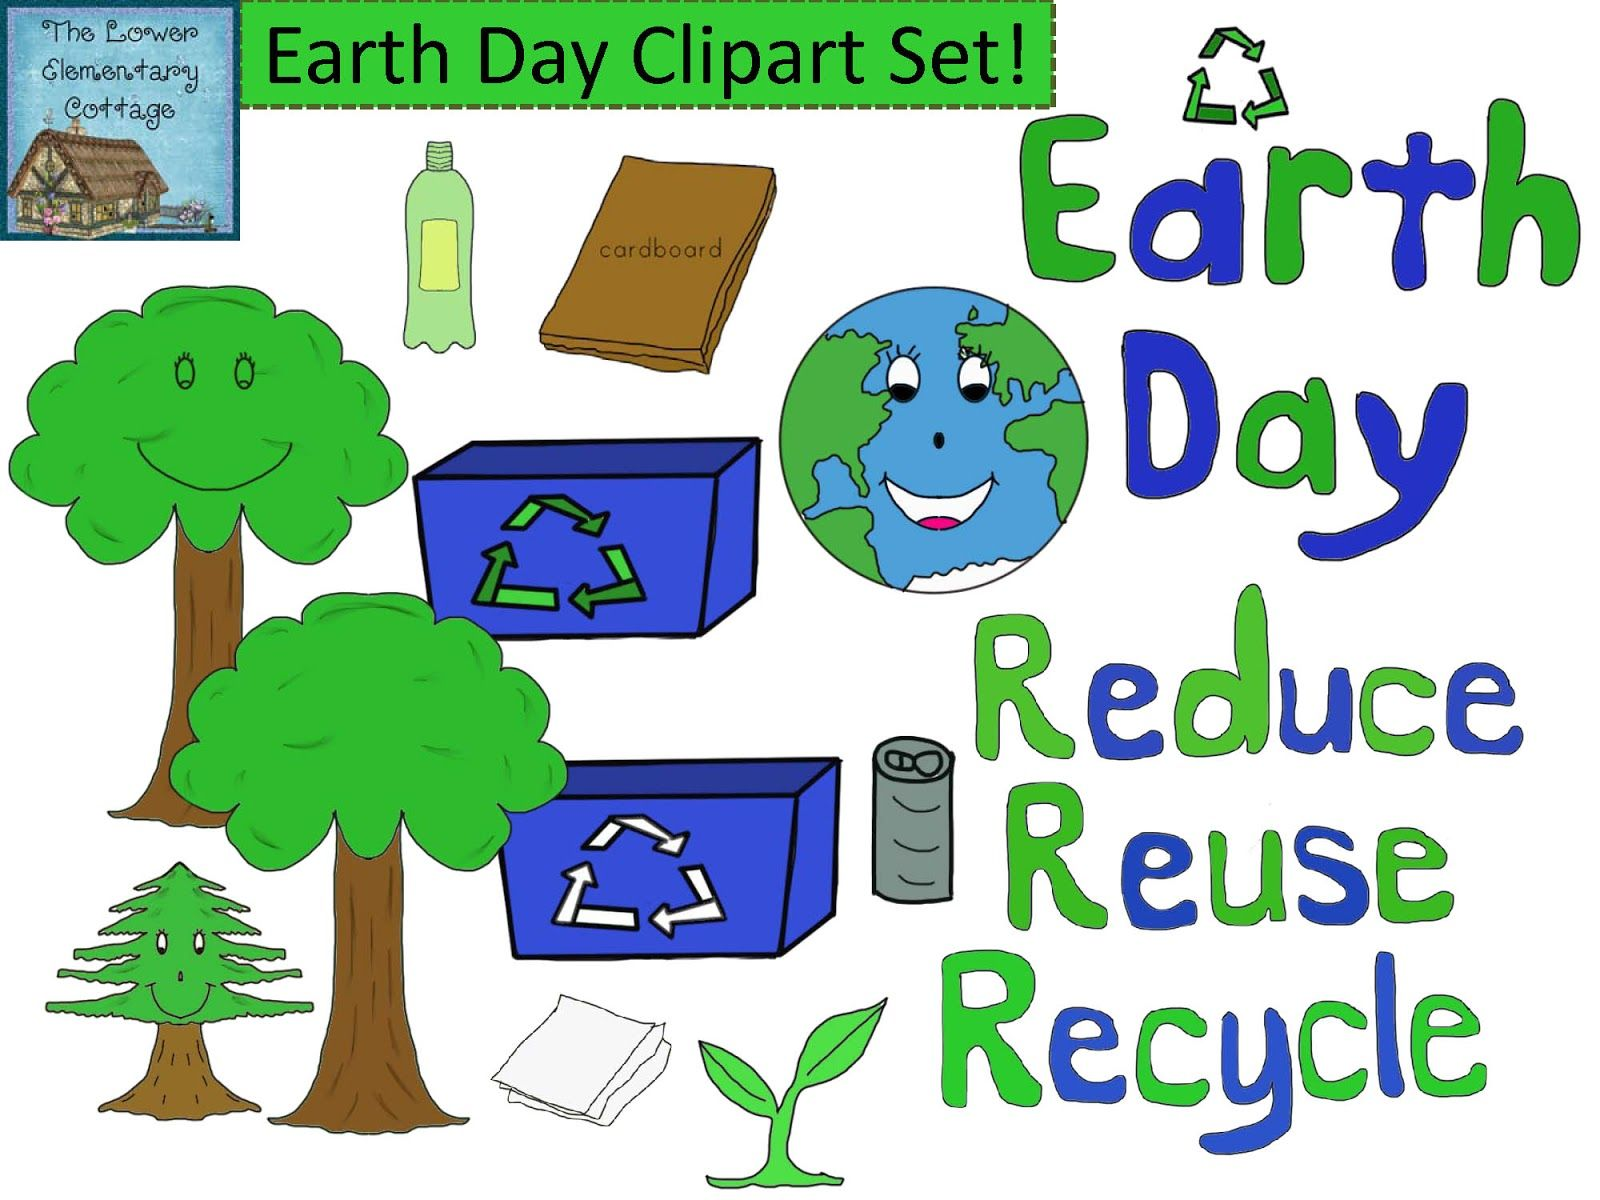 New Earth Day Clipart Giveaway Reminder